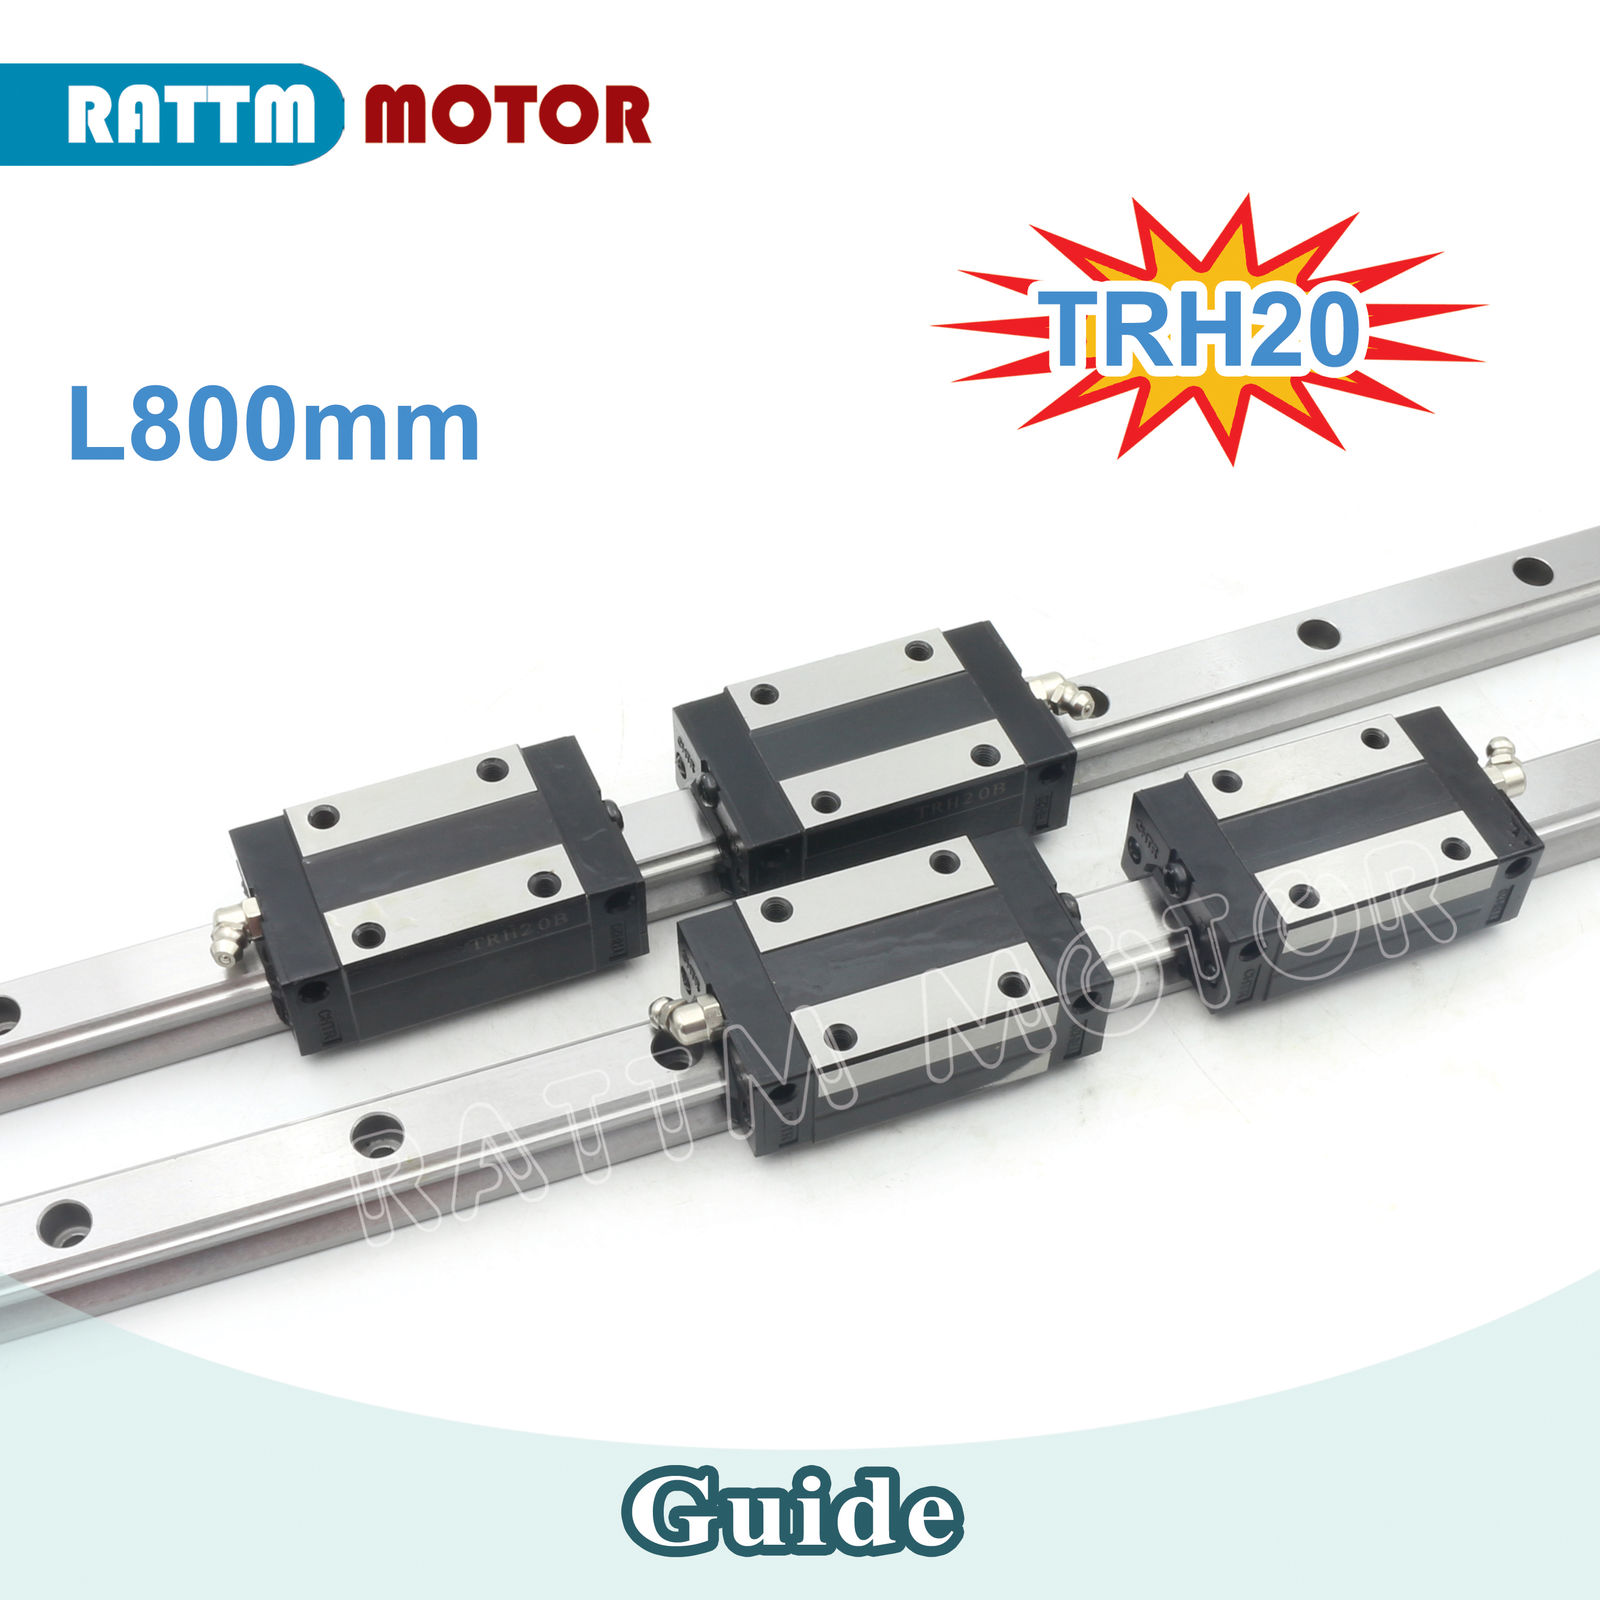 20mm Square Linear Rail Guideway TRH20 800mm &TRH20B Slider Block for CNC Router + TRH20B Square block large format printer spare parts wit color mutoh lecai locor xenons block slider qeh20ca linear guide slider 1pc